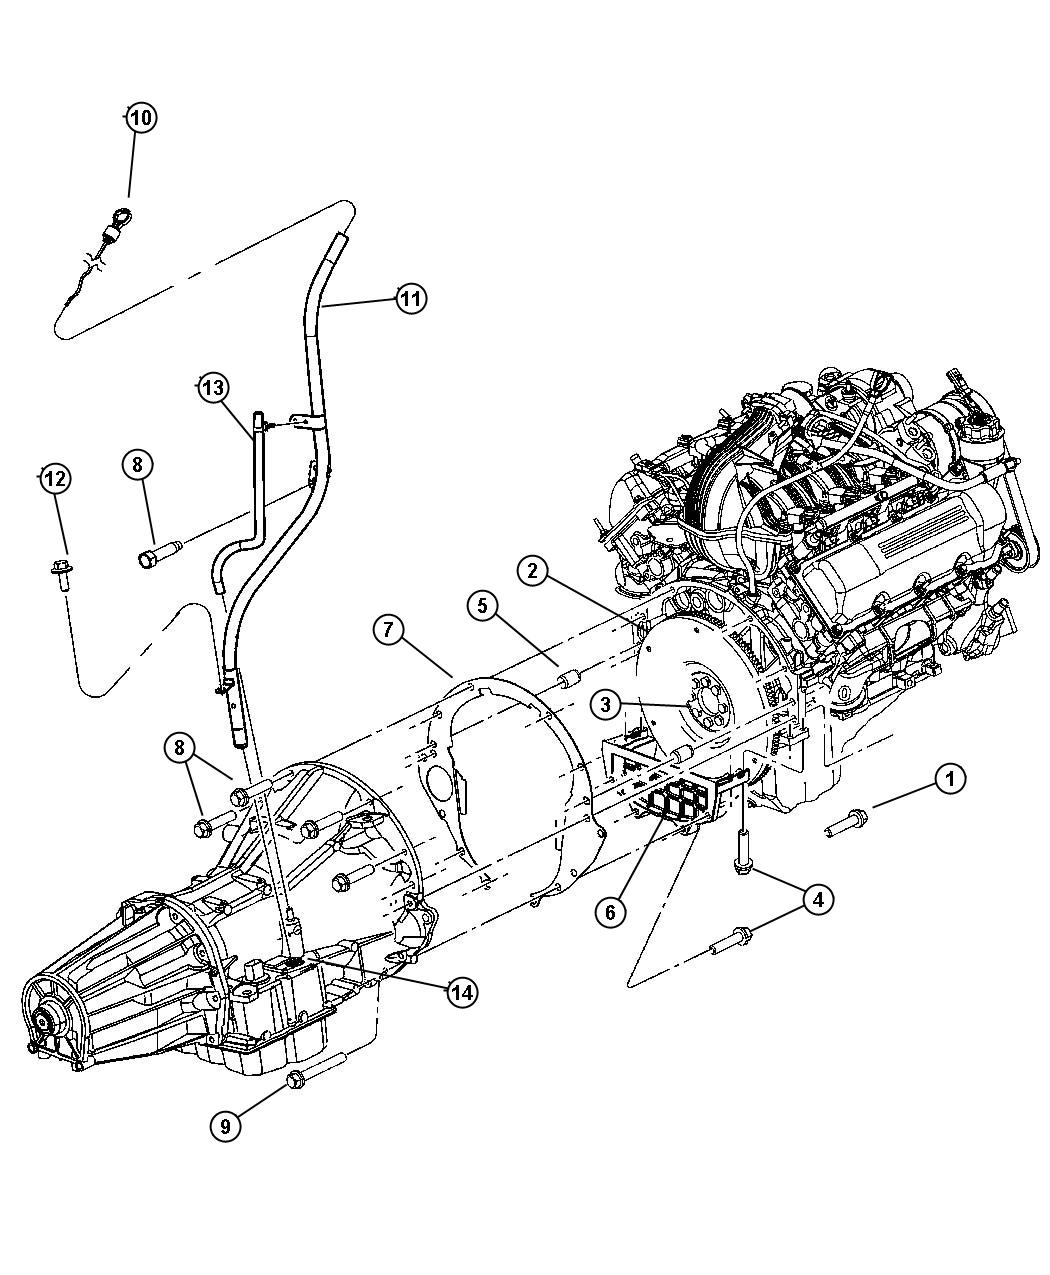 Dodge Dakota Transmission Diagram Free Engine Image For User Manual Download